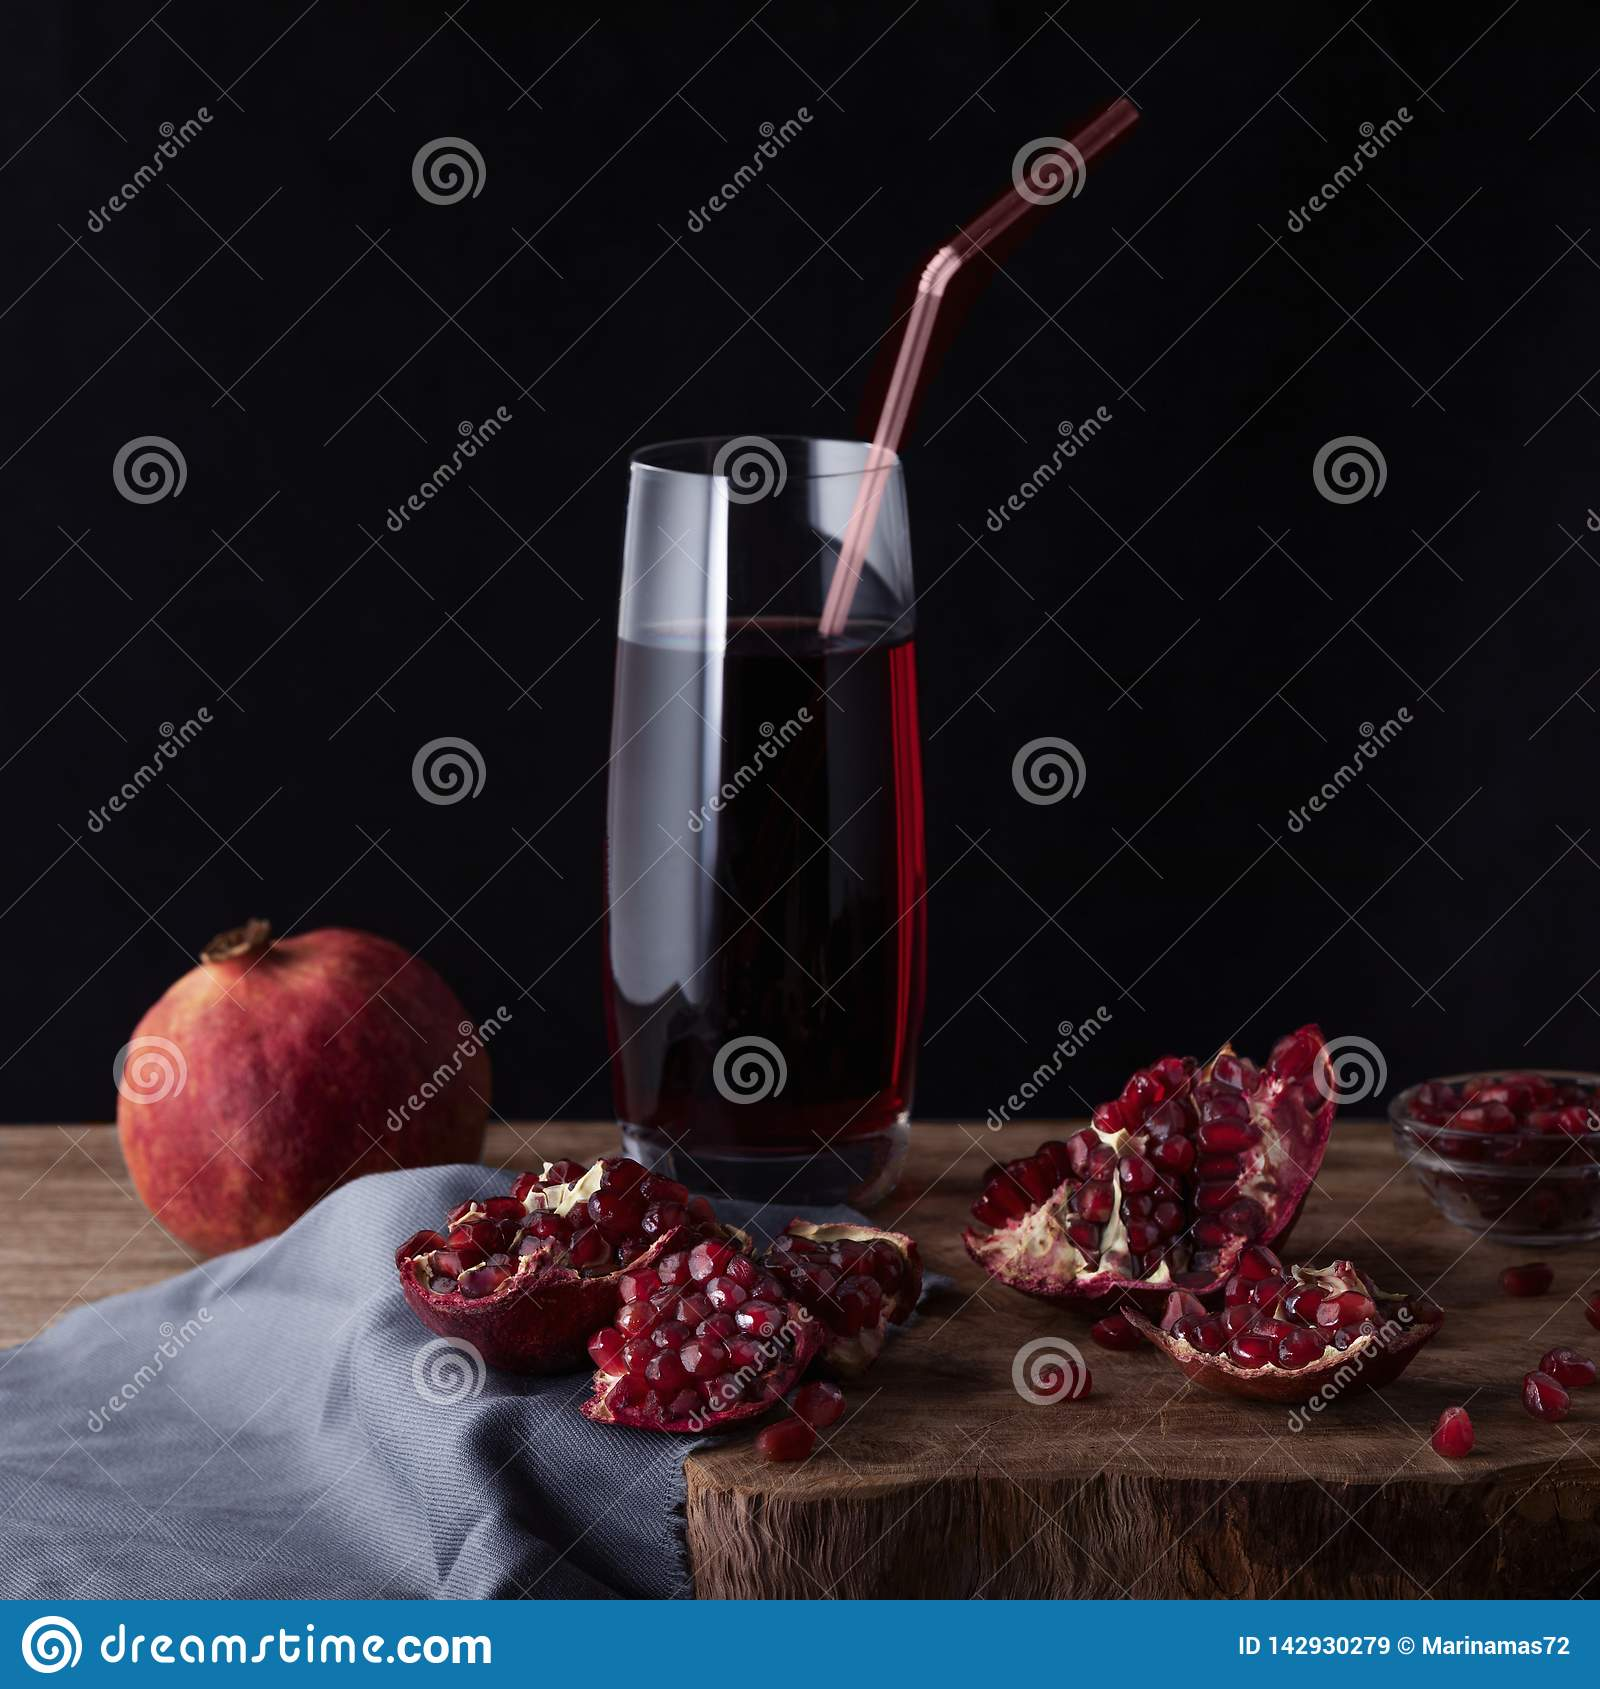 Glass of pomegranate juice with pomegranate slices and garnet fruit